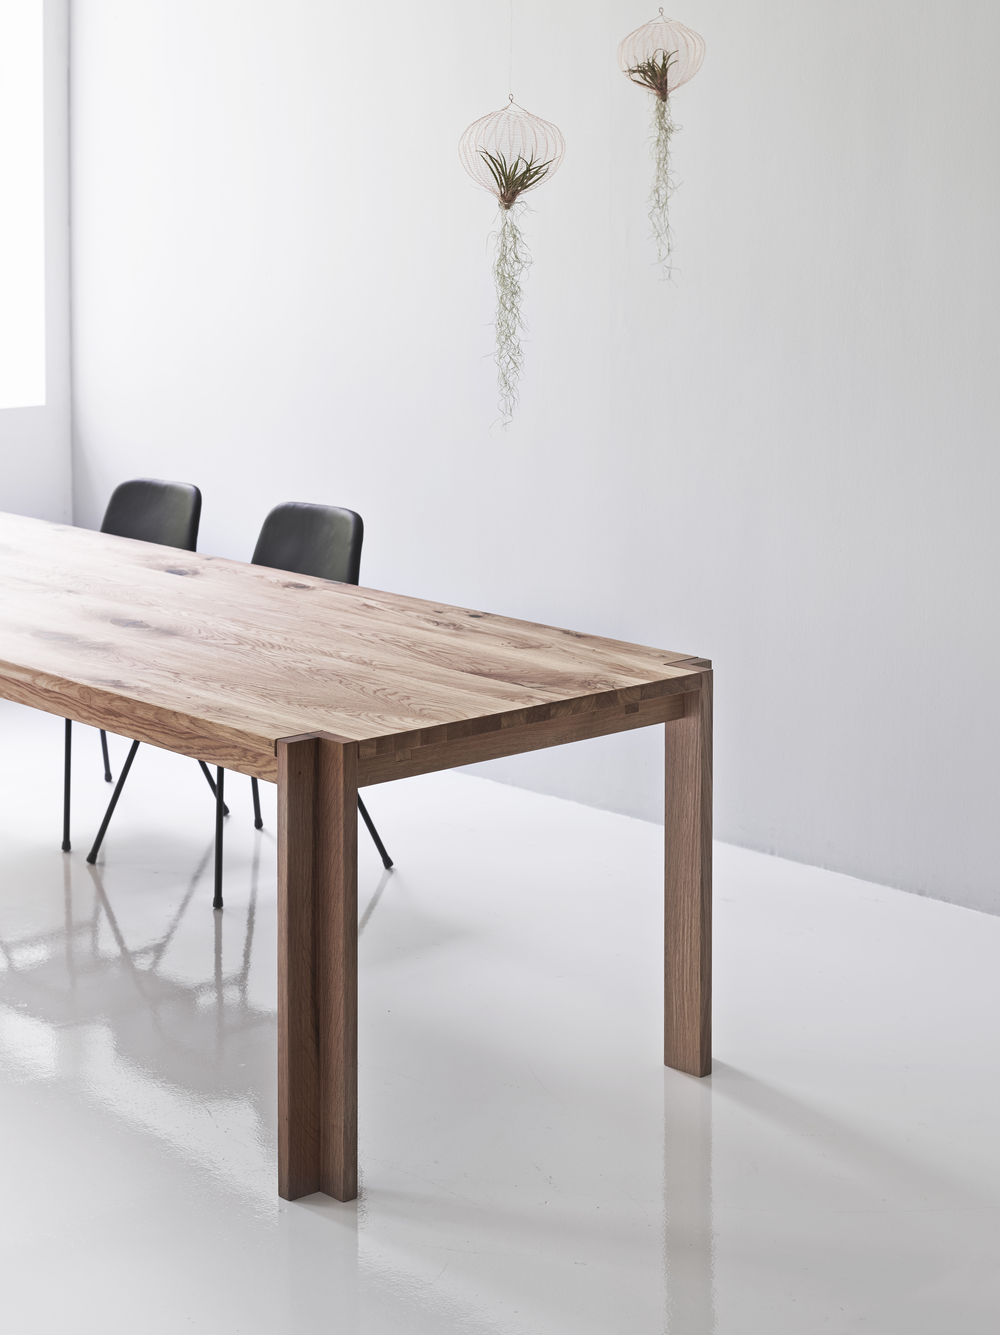 Jeppe Utzon Table_from corner_with deco_oak_steel copilot chair.jpg